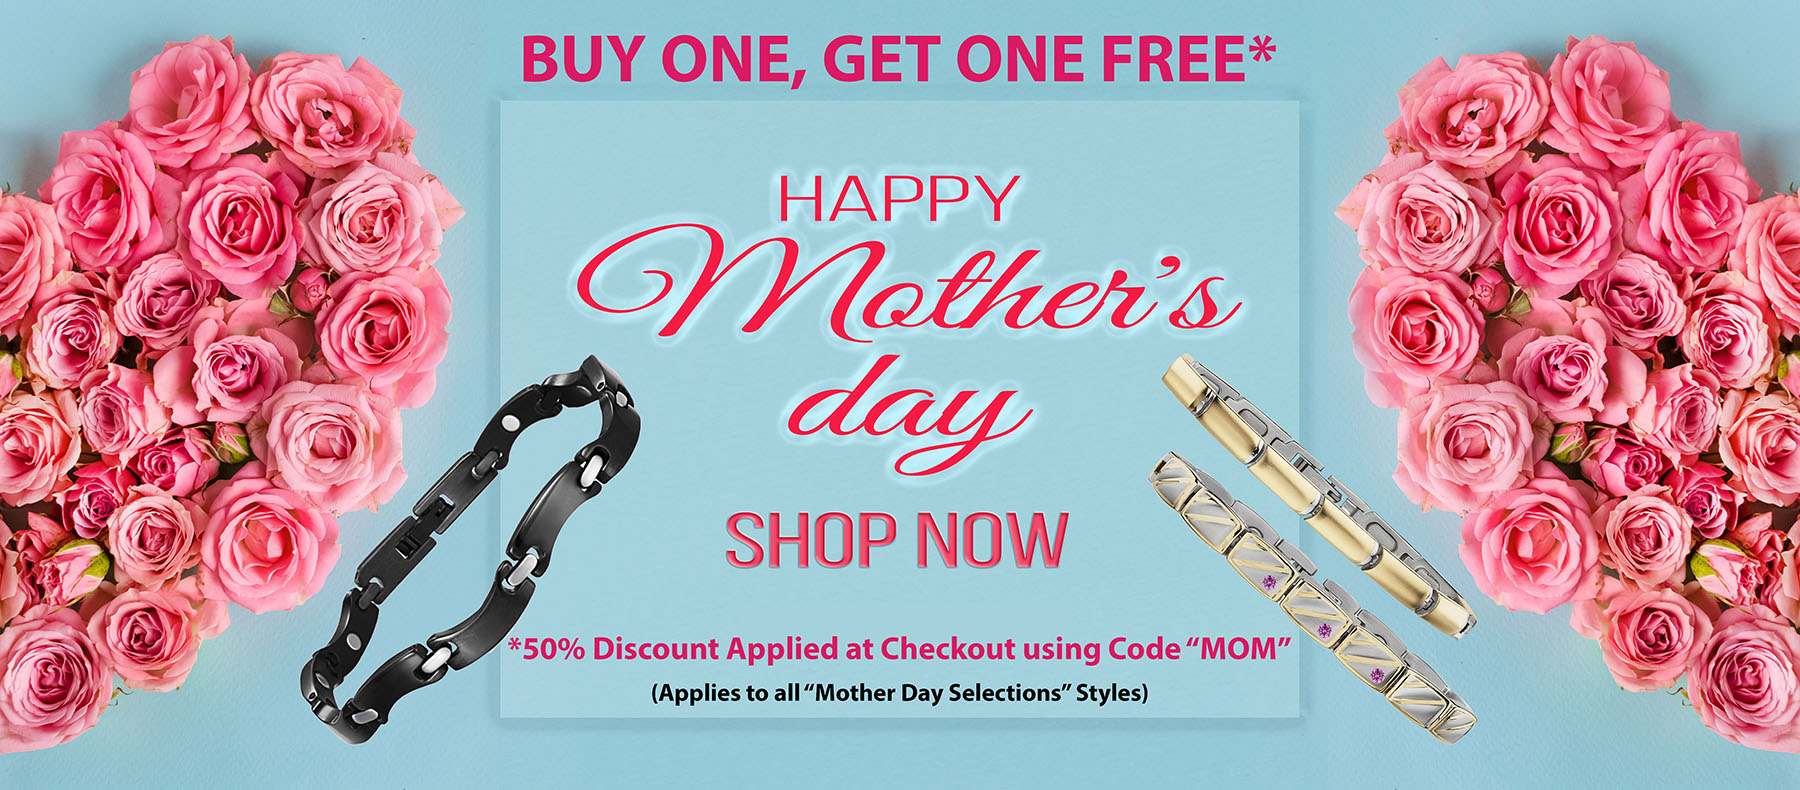 mothers-day-2021-corrected.jpg